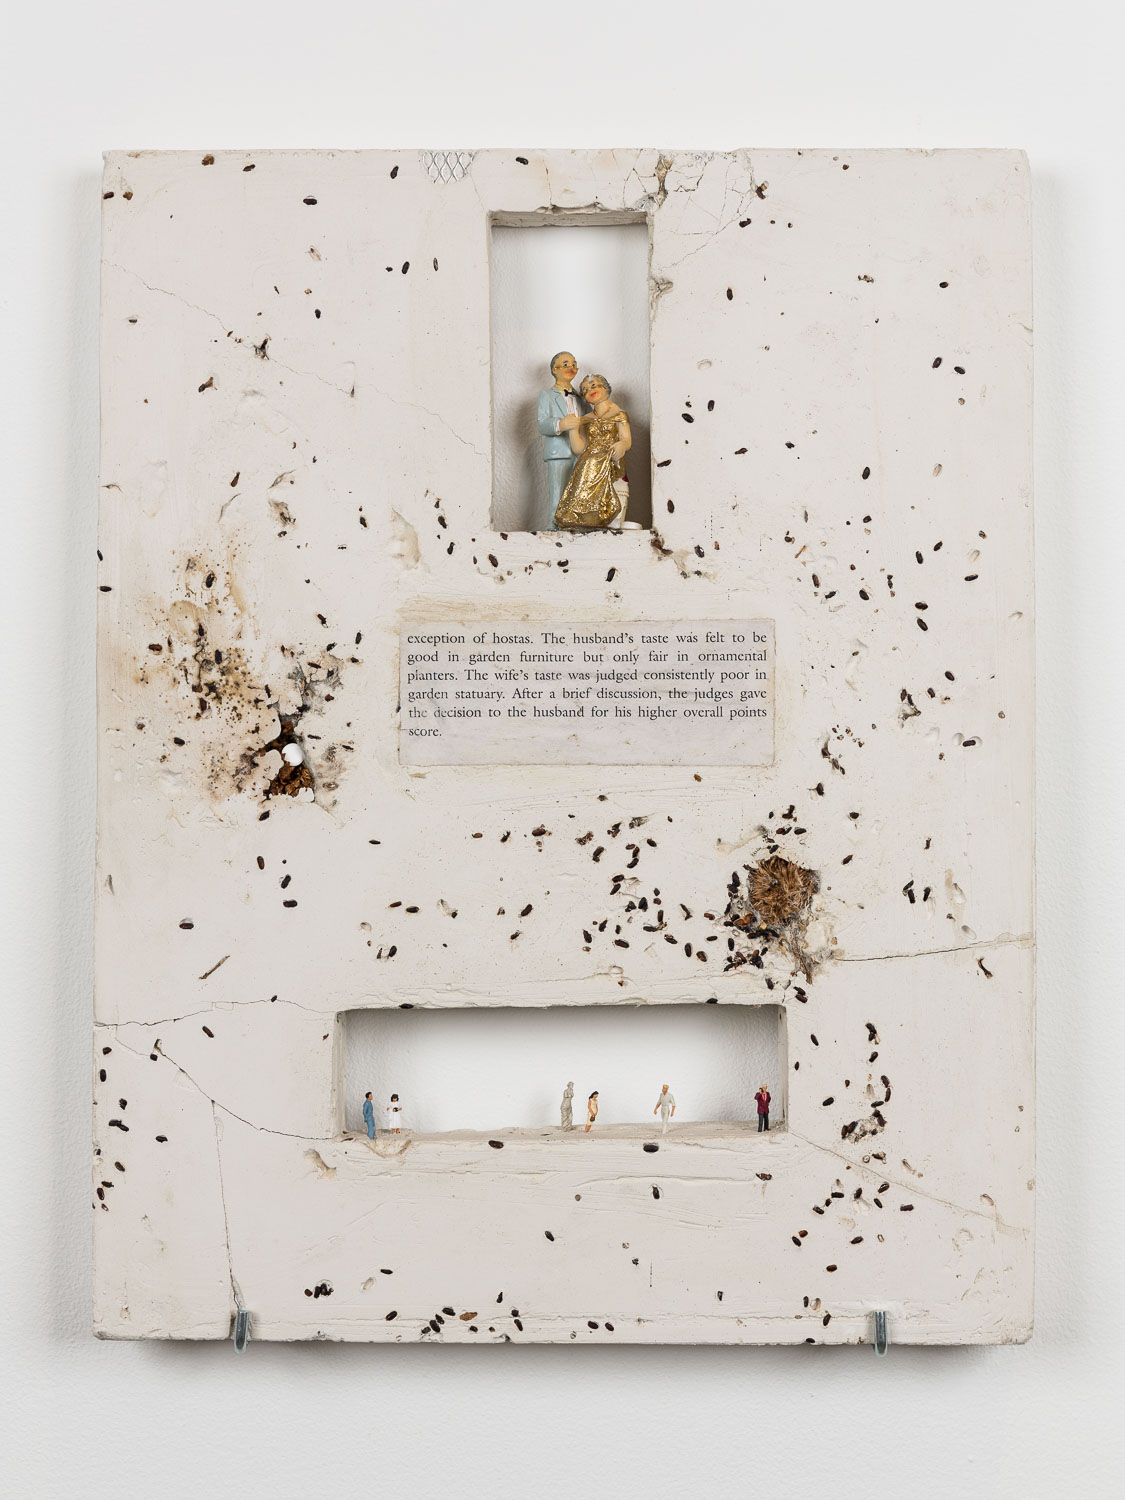 George Rippon Good Taste Context, 2015 Dandelion, models, black rice, allergy tablets, epoxy, plaster 47 x 37 cm 18 1/2 x 14 5/8 ins. Now Panic , George Rippon